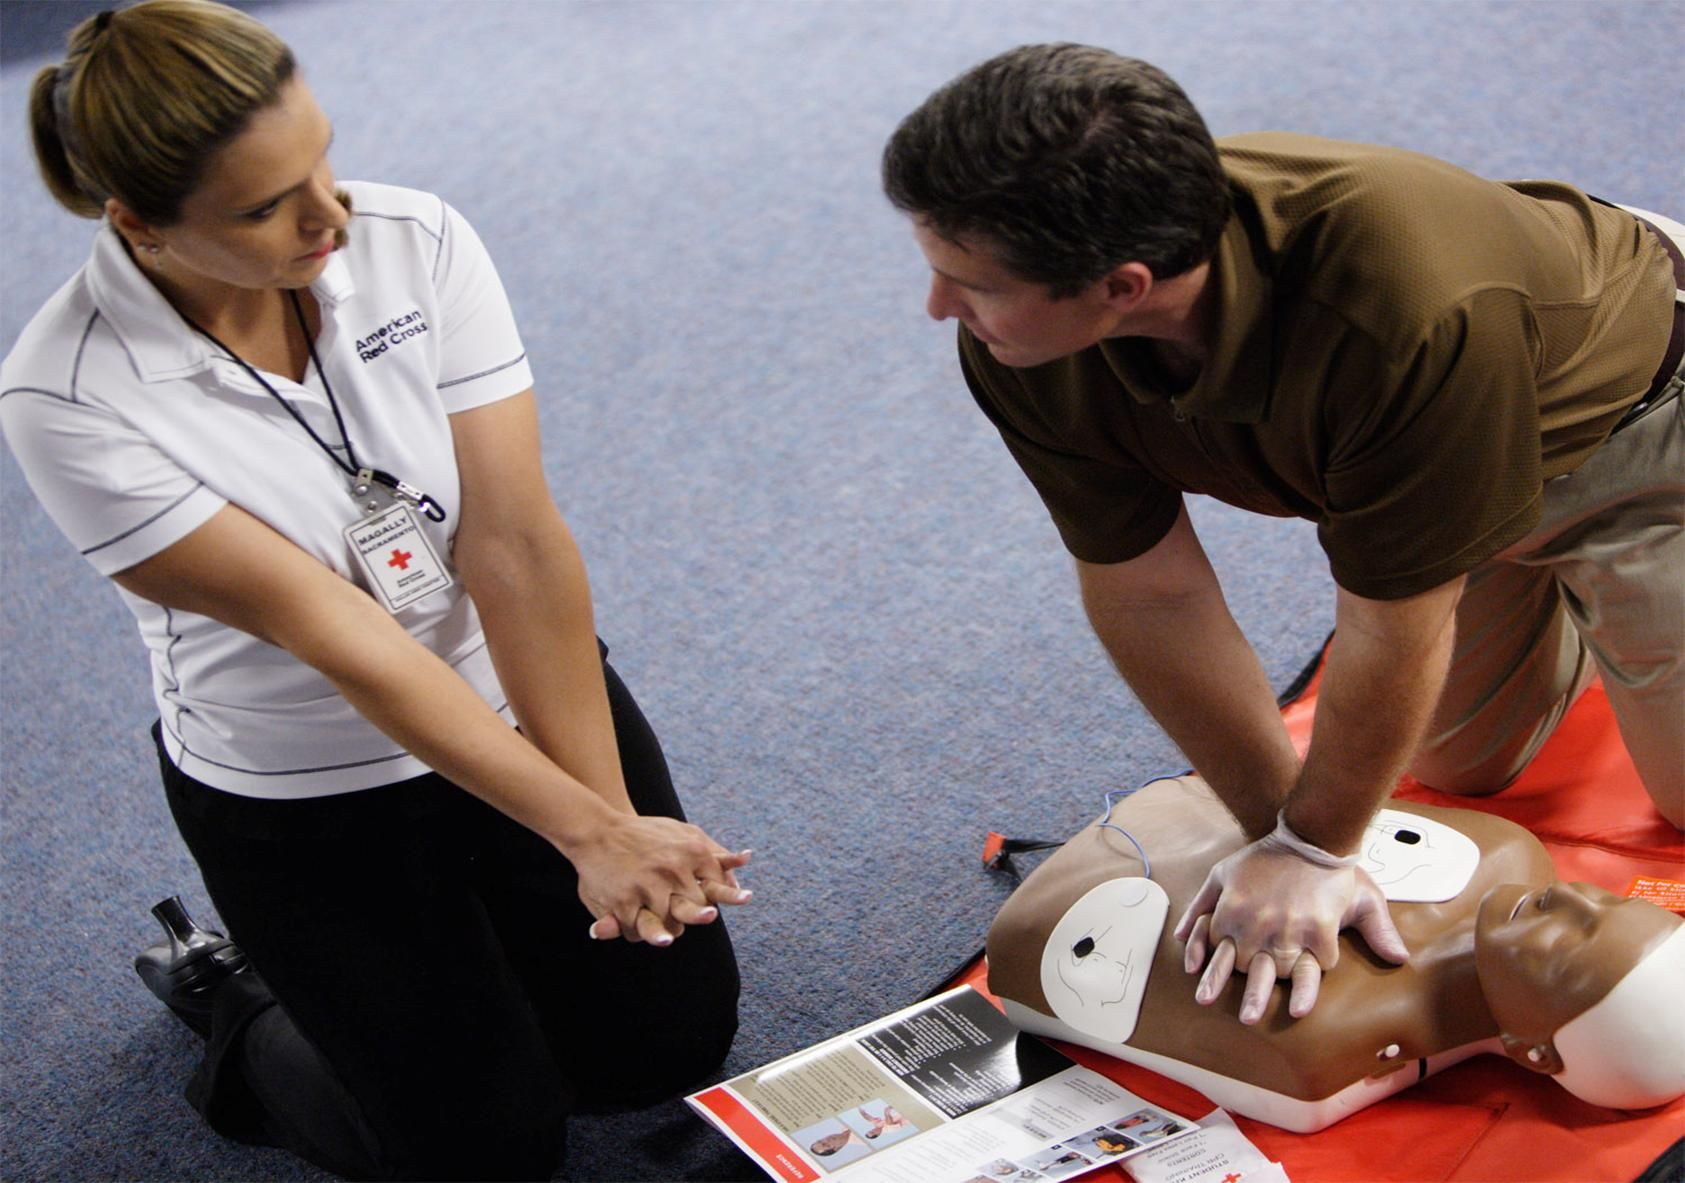 Learn CPR to assist in a natural disaster Getting ready